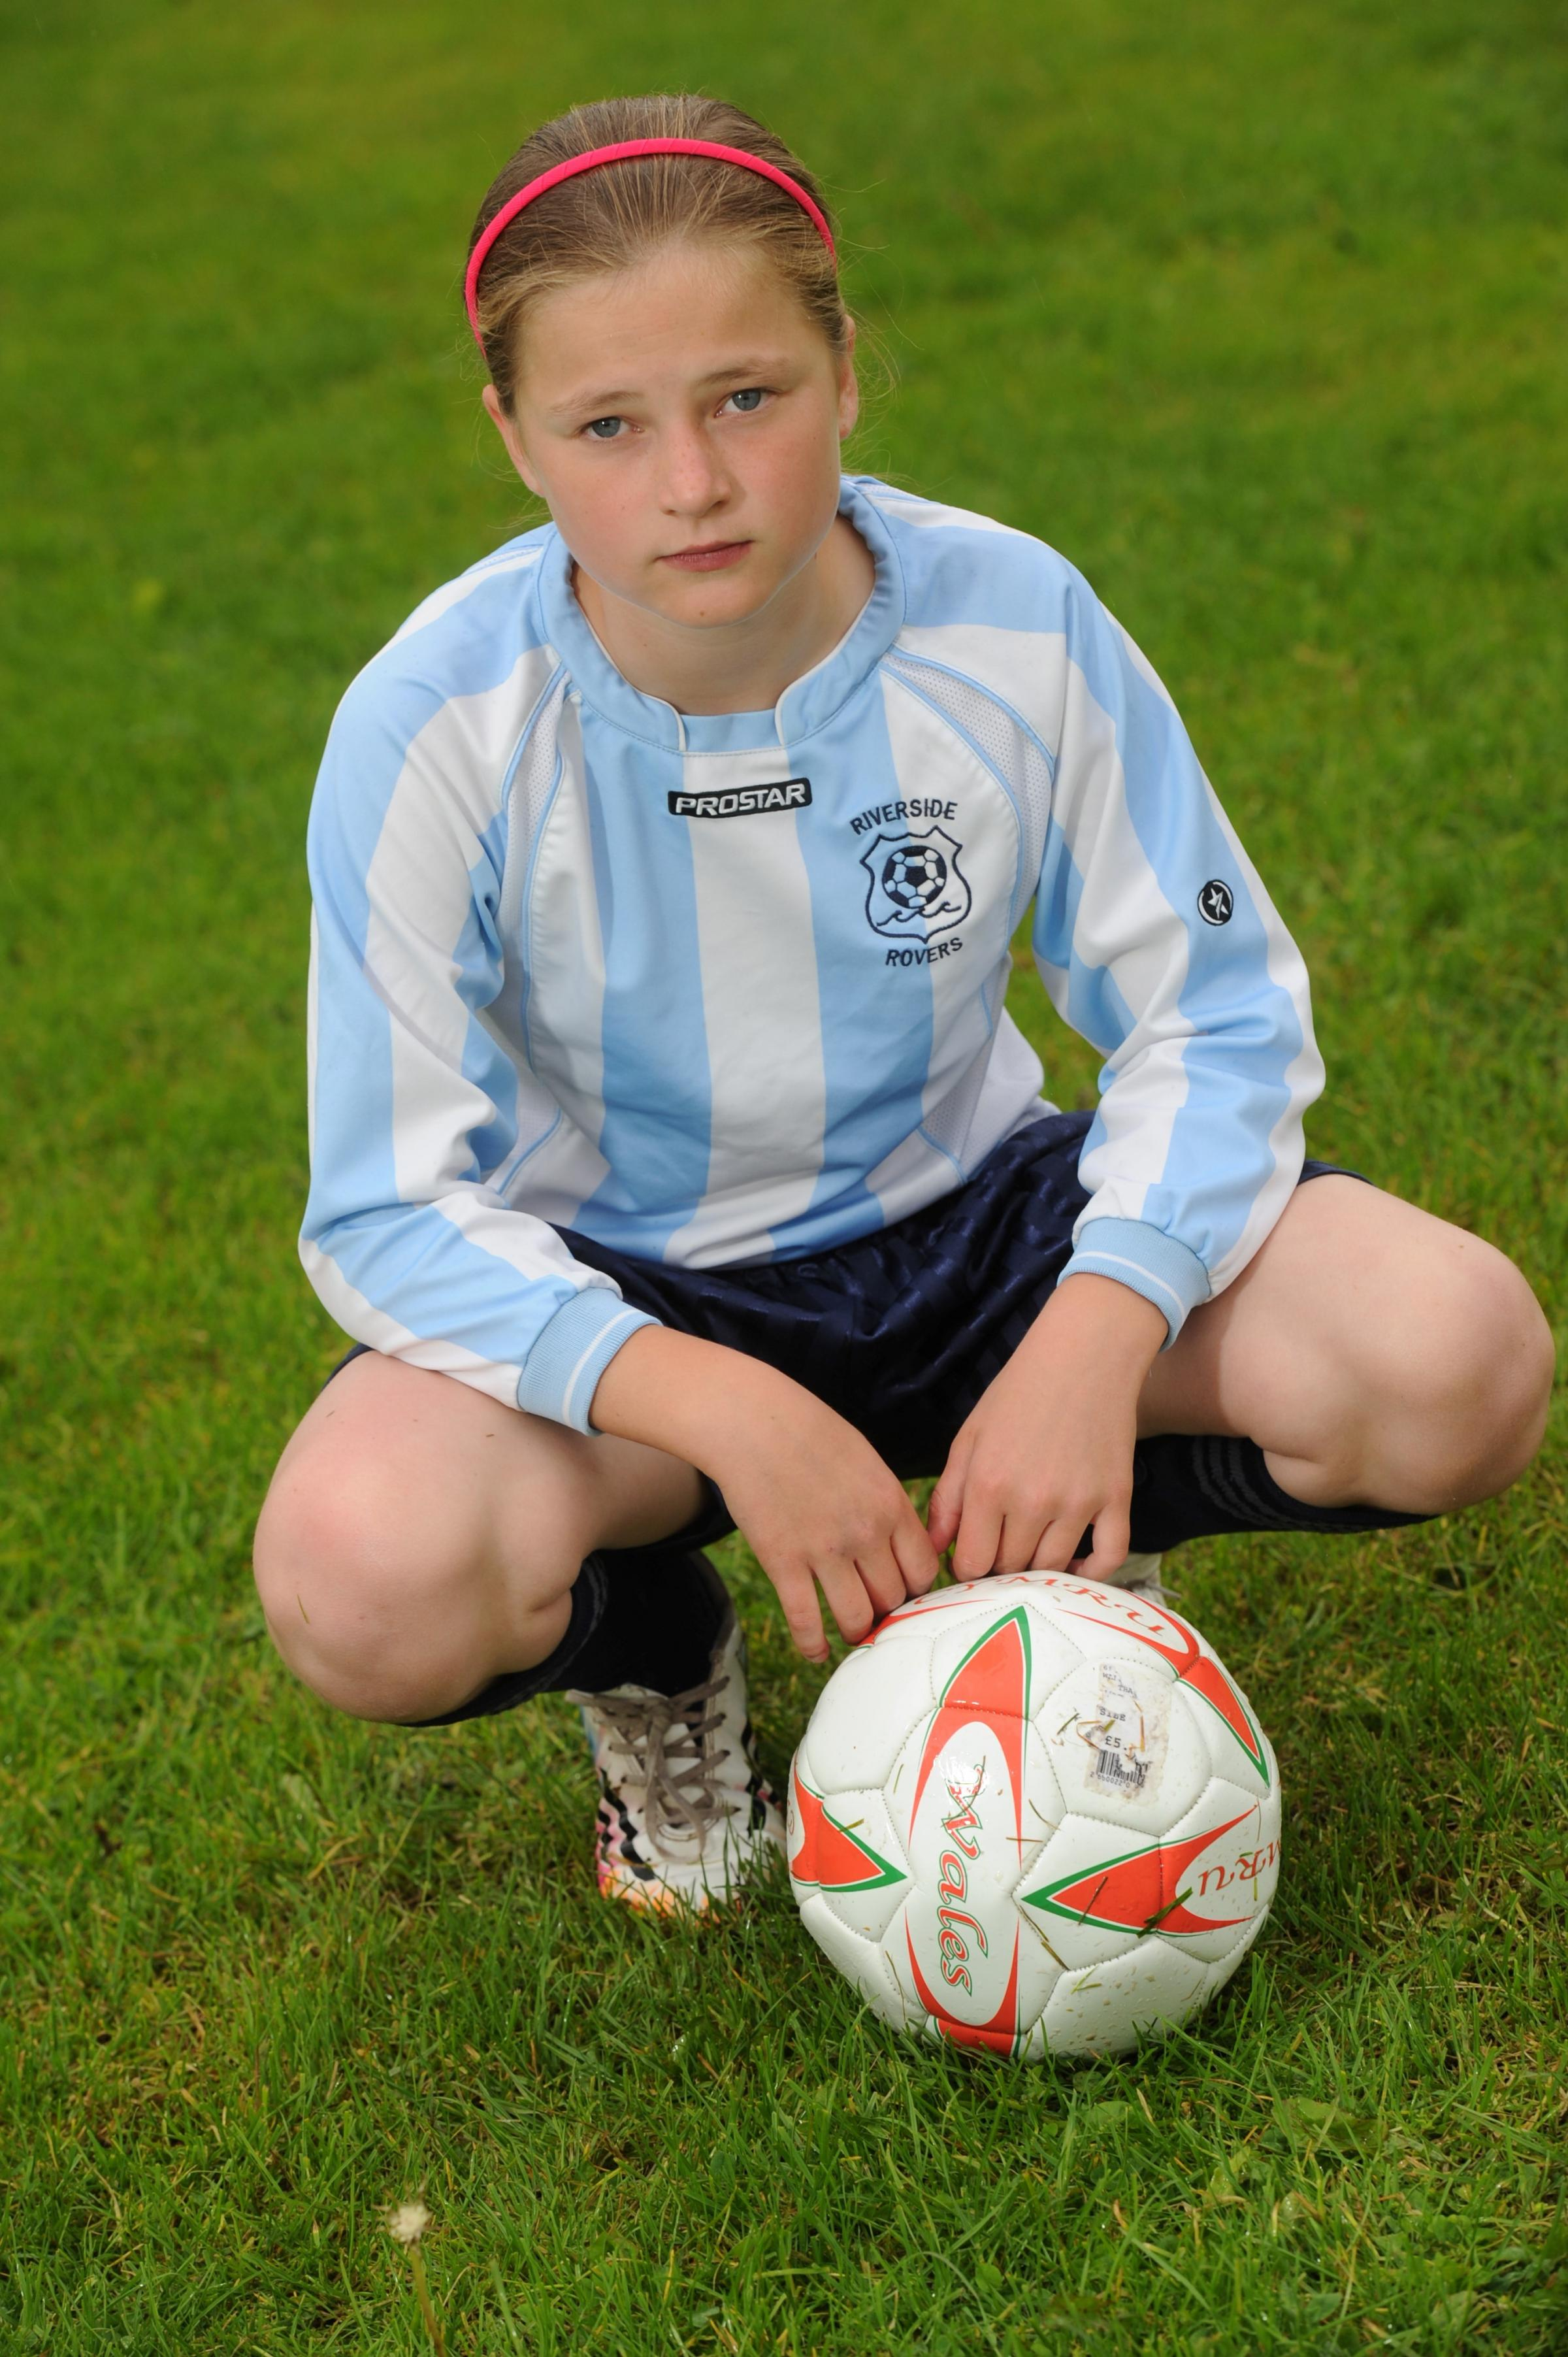 Campaign aims to let Newport girl, 11, play football